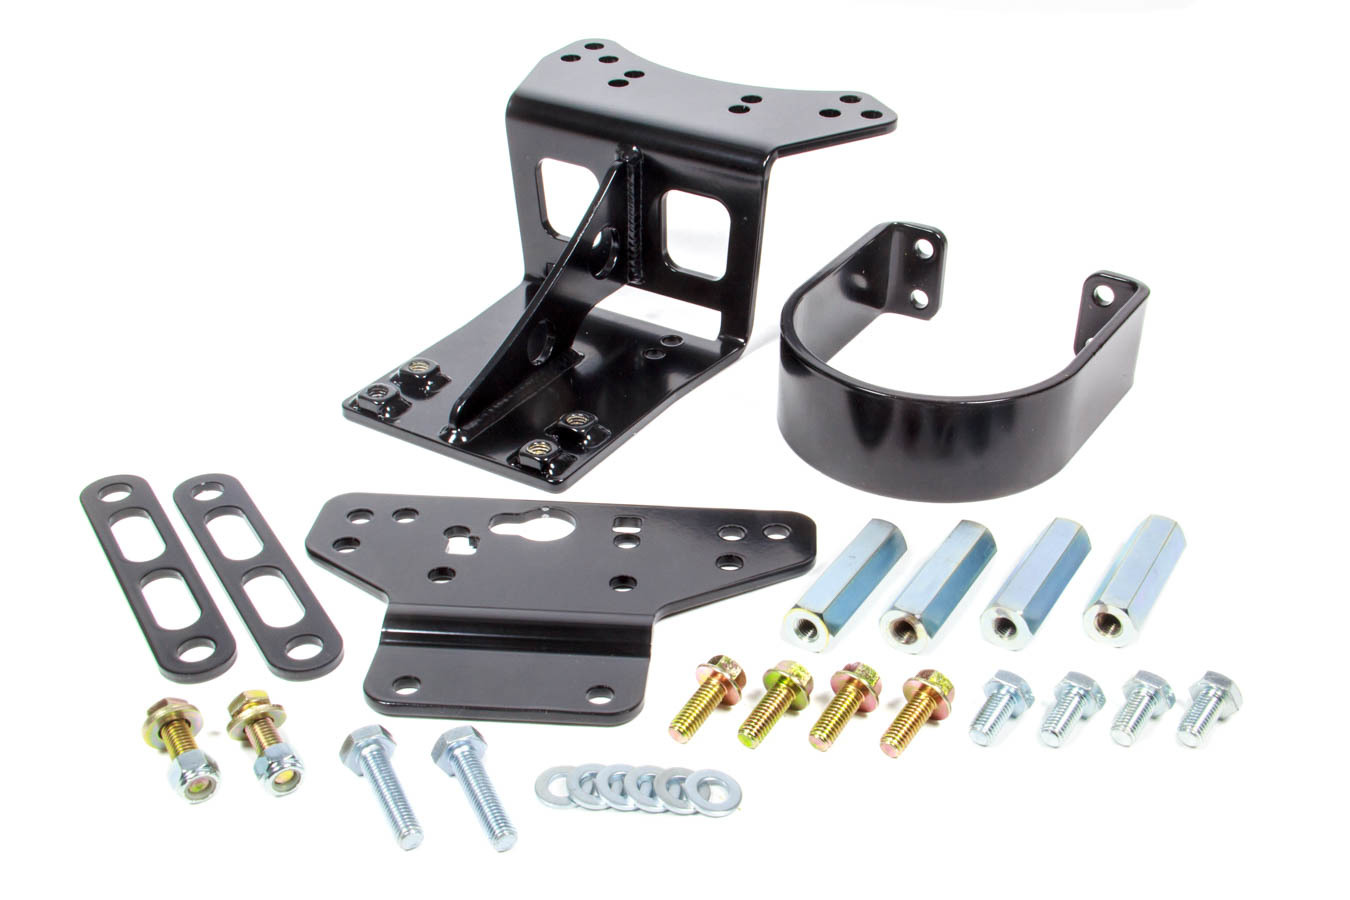 Detroit Speed 011204 Drive Shaft Loop, Front, Bolt-On, Steel, Black Powder Coat, Chevy Camaro 2010-14, Kit